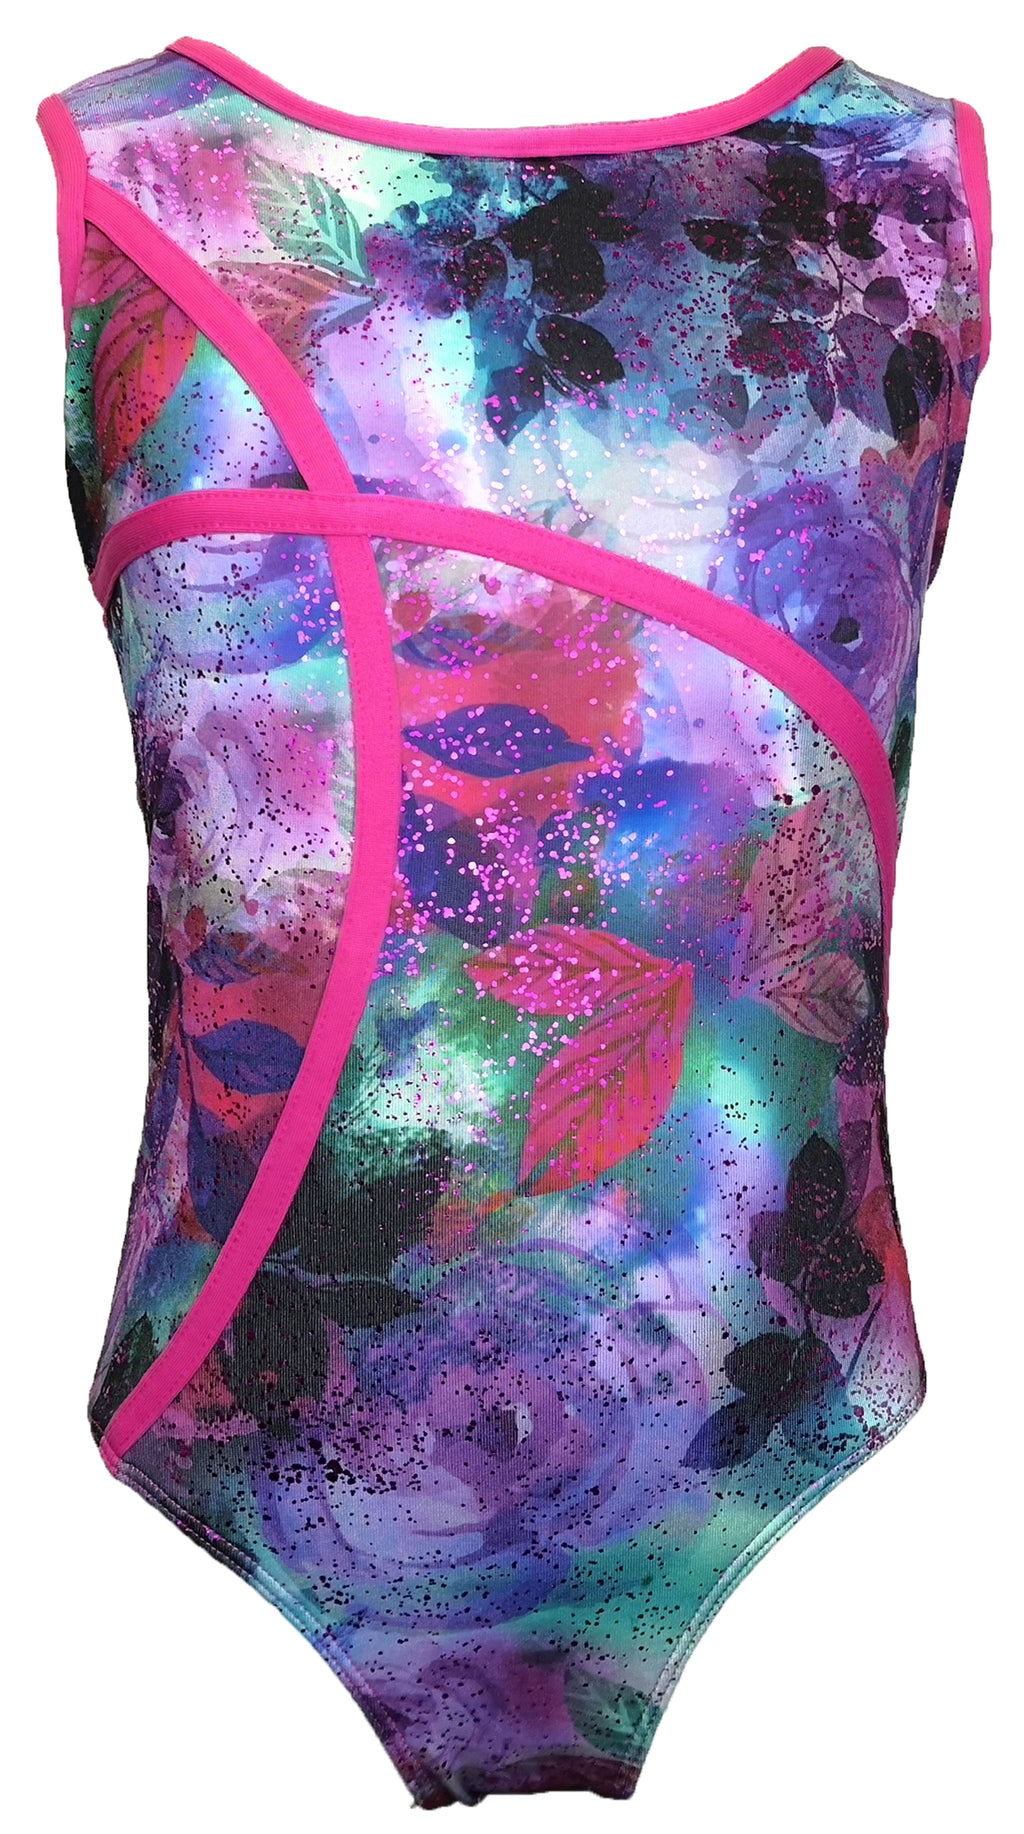 Gymnastics Leotard with Criss Cross Back - Child